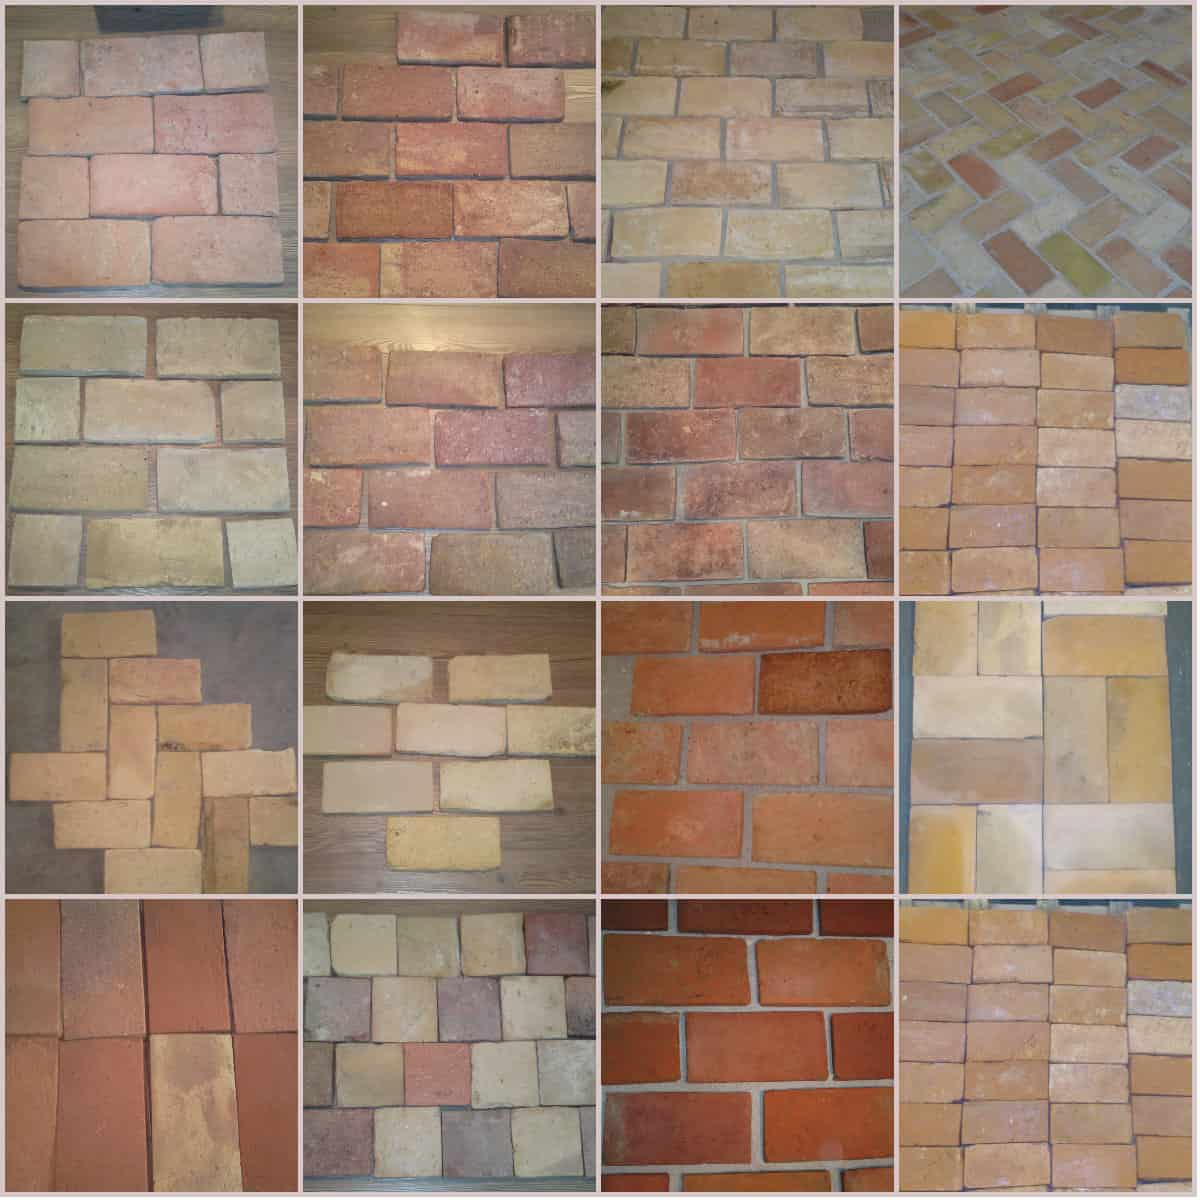 Brick Tiles 2014 Contemporary Tile Design Ideas From Around The World